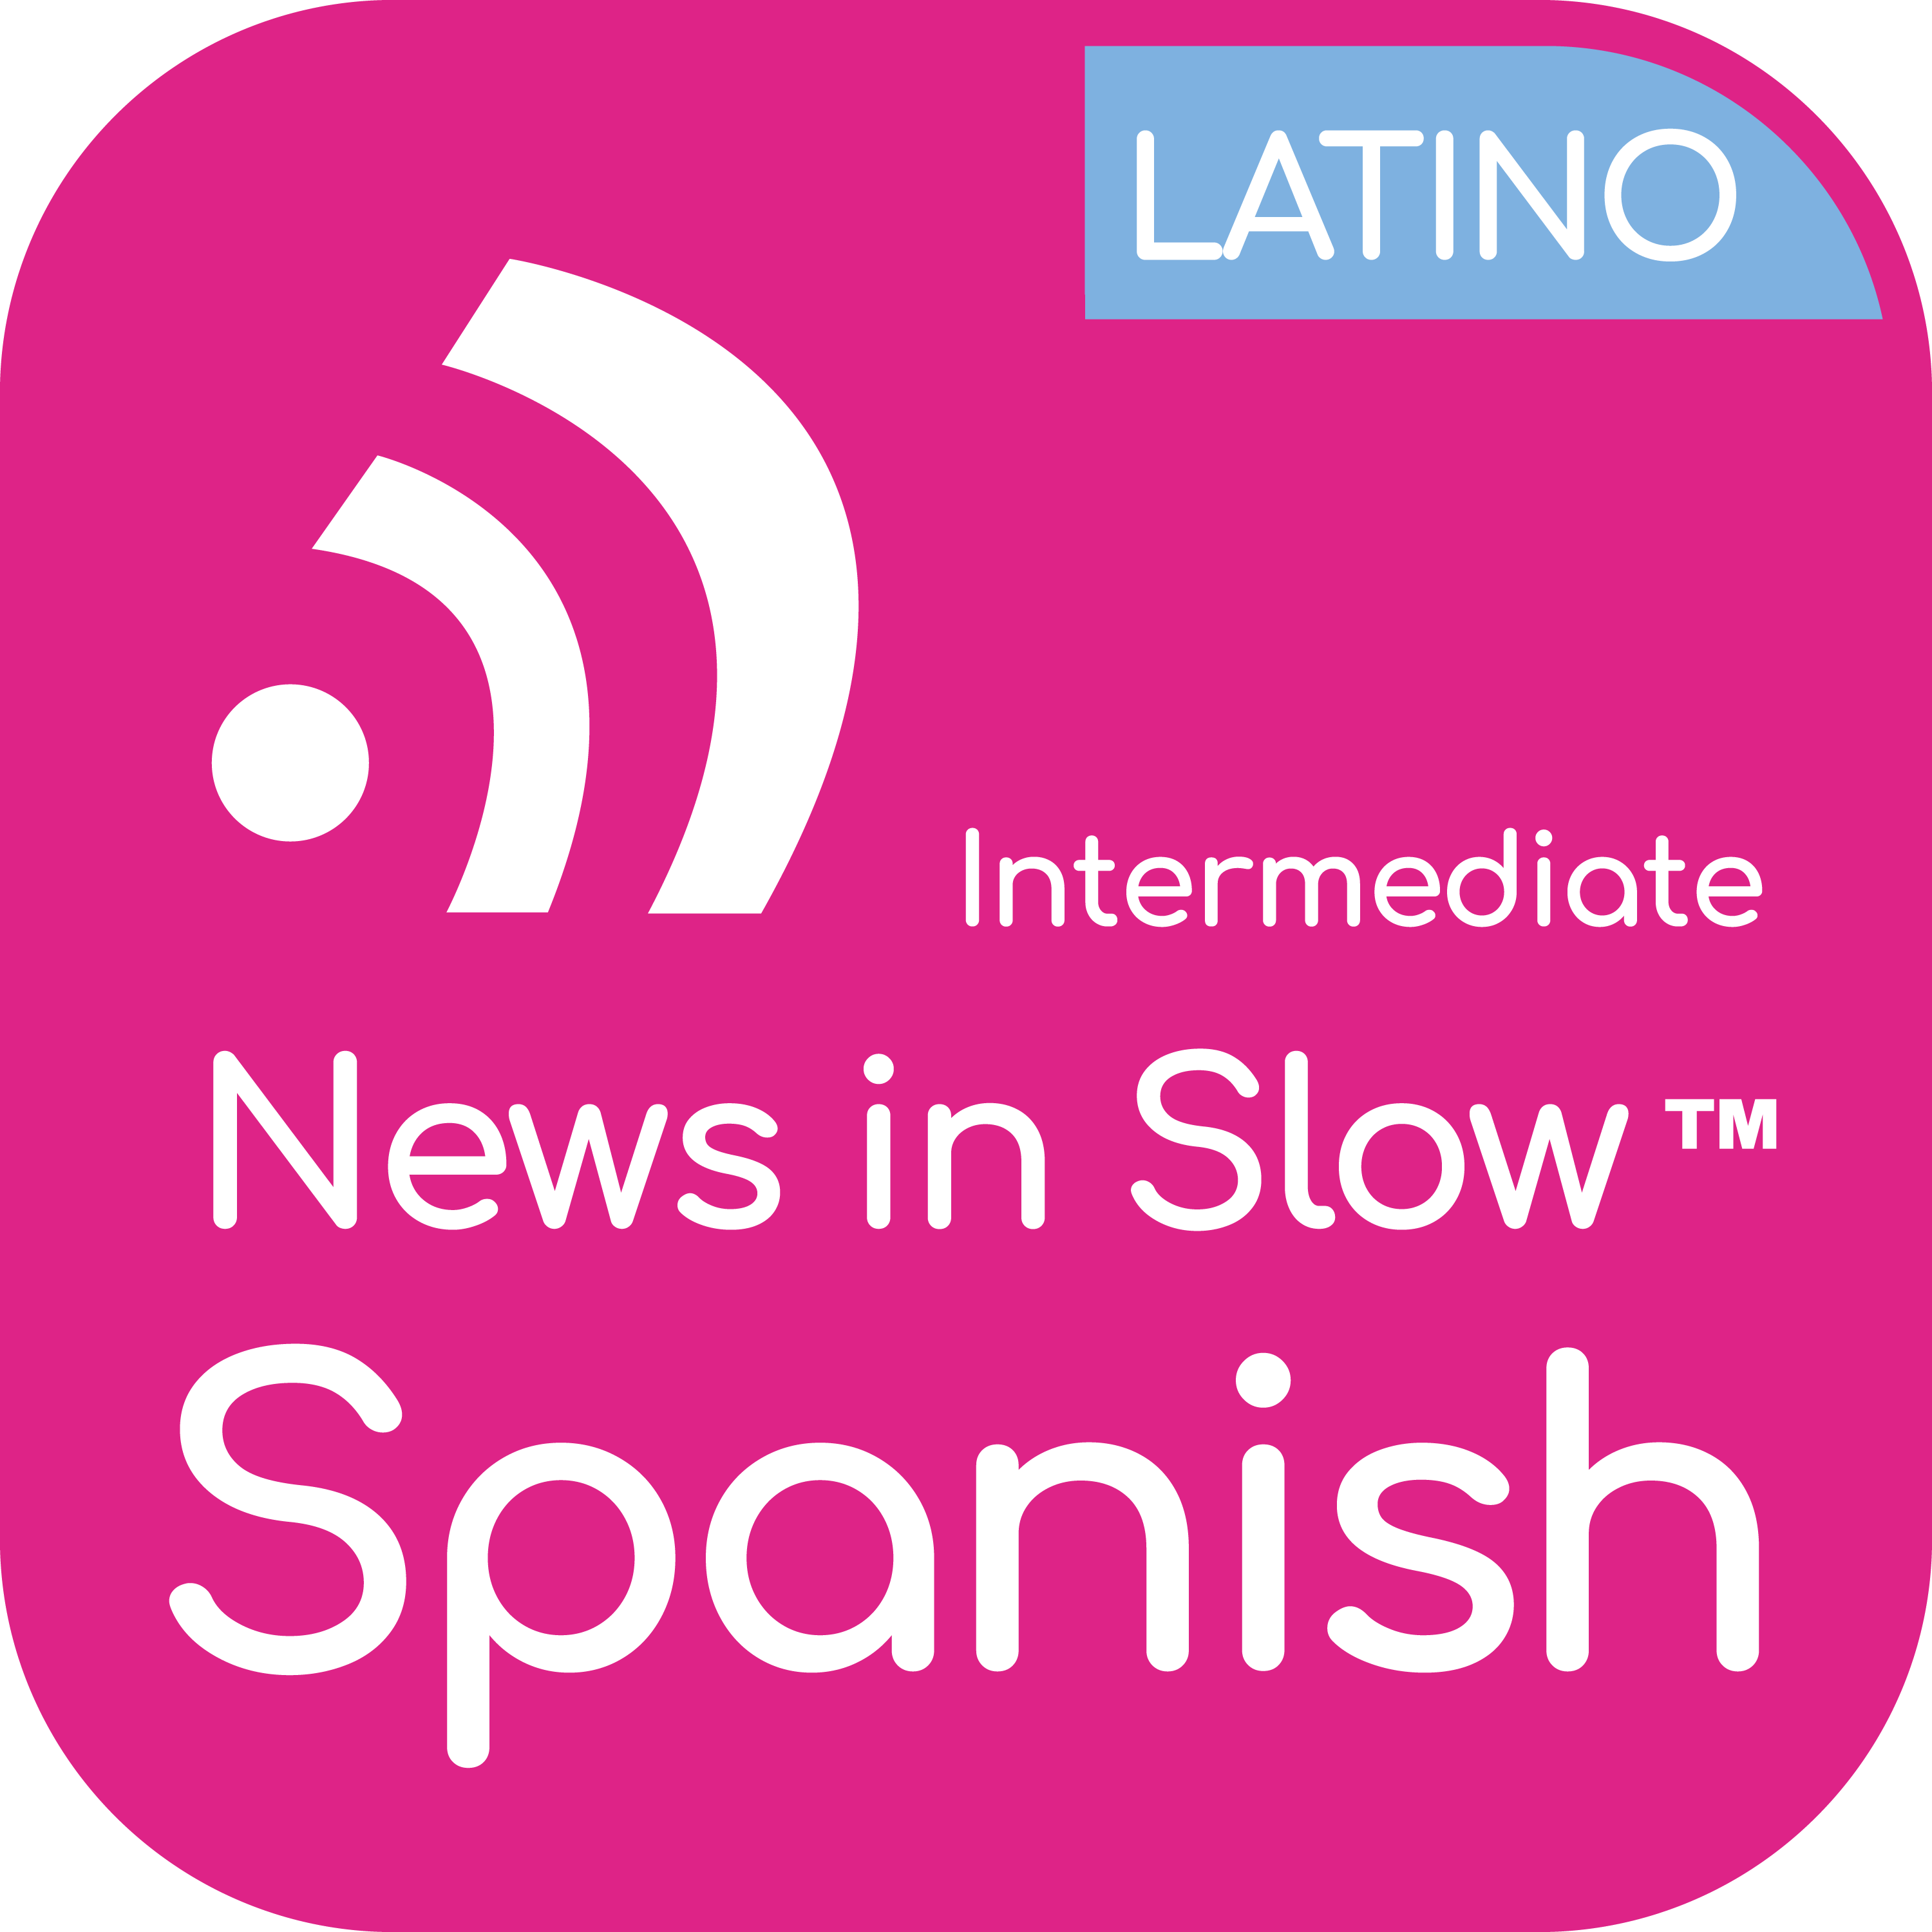 News In Slow Spanish Latino #393 - Spanish Grammar, News, and Expressions